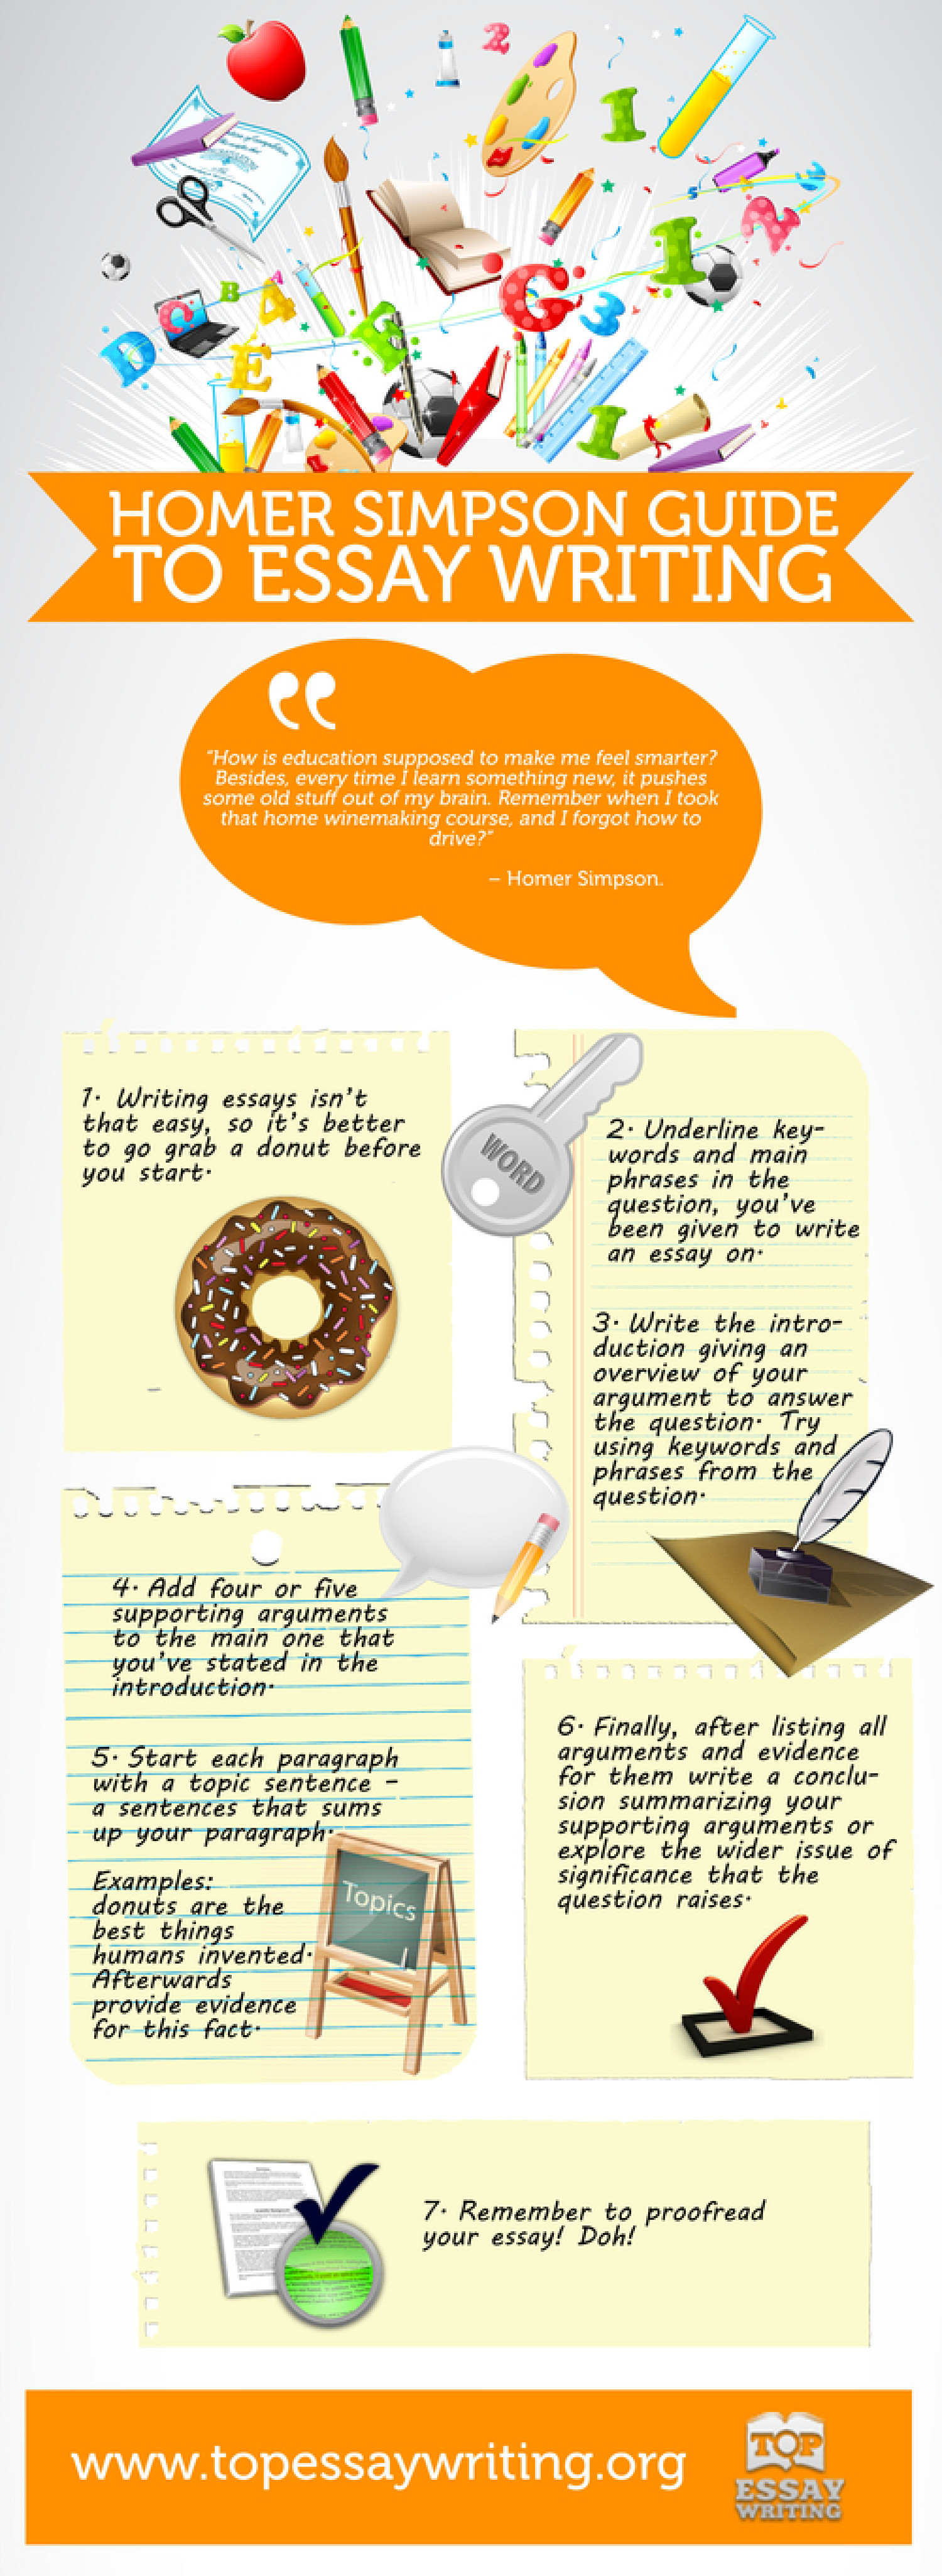 Homer Simpson Guide To Essay Writing Infographic